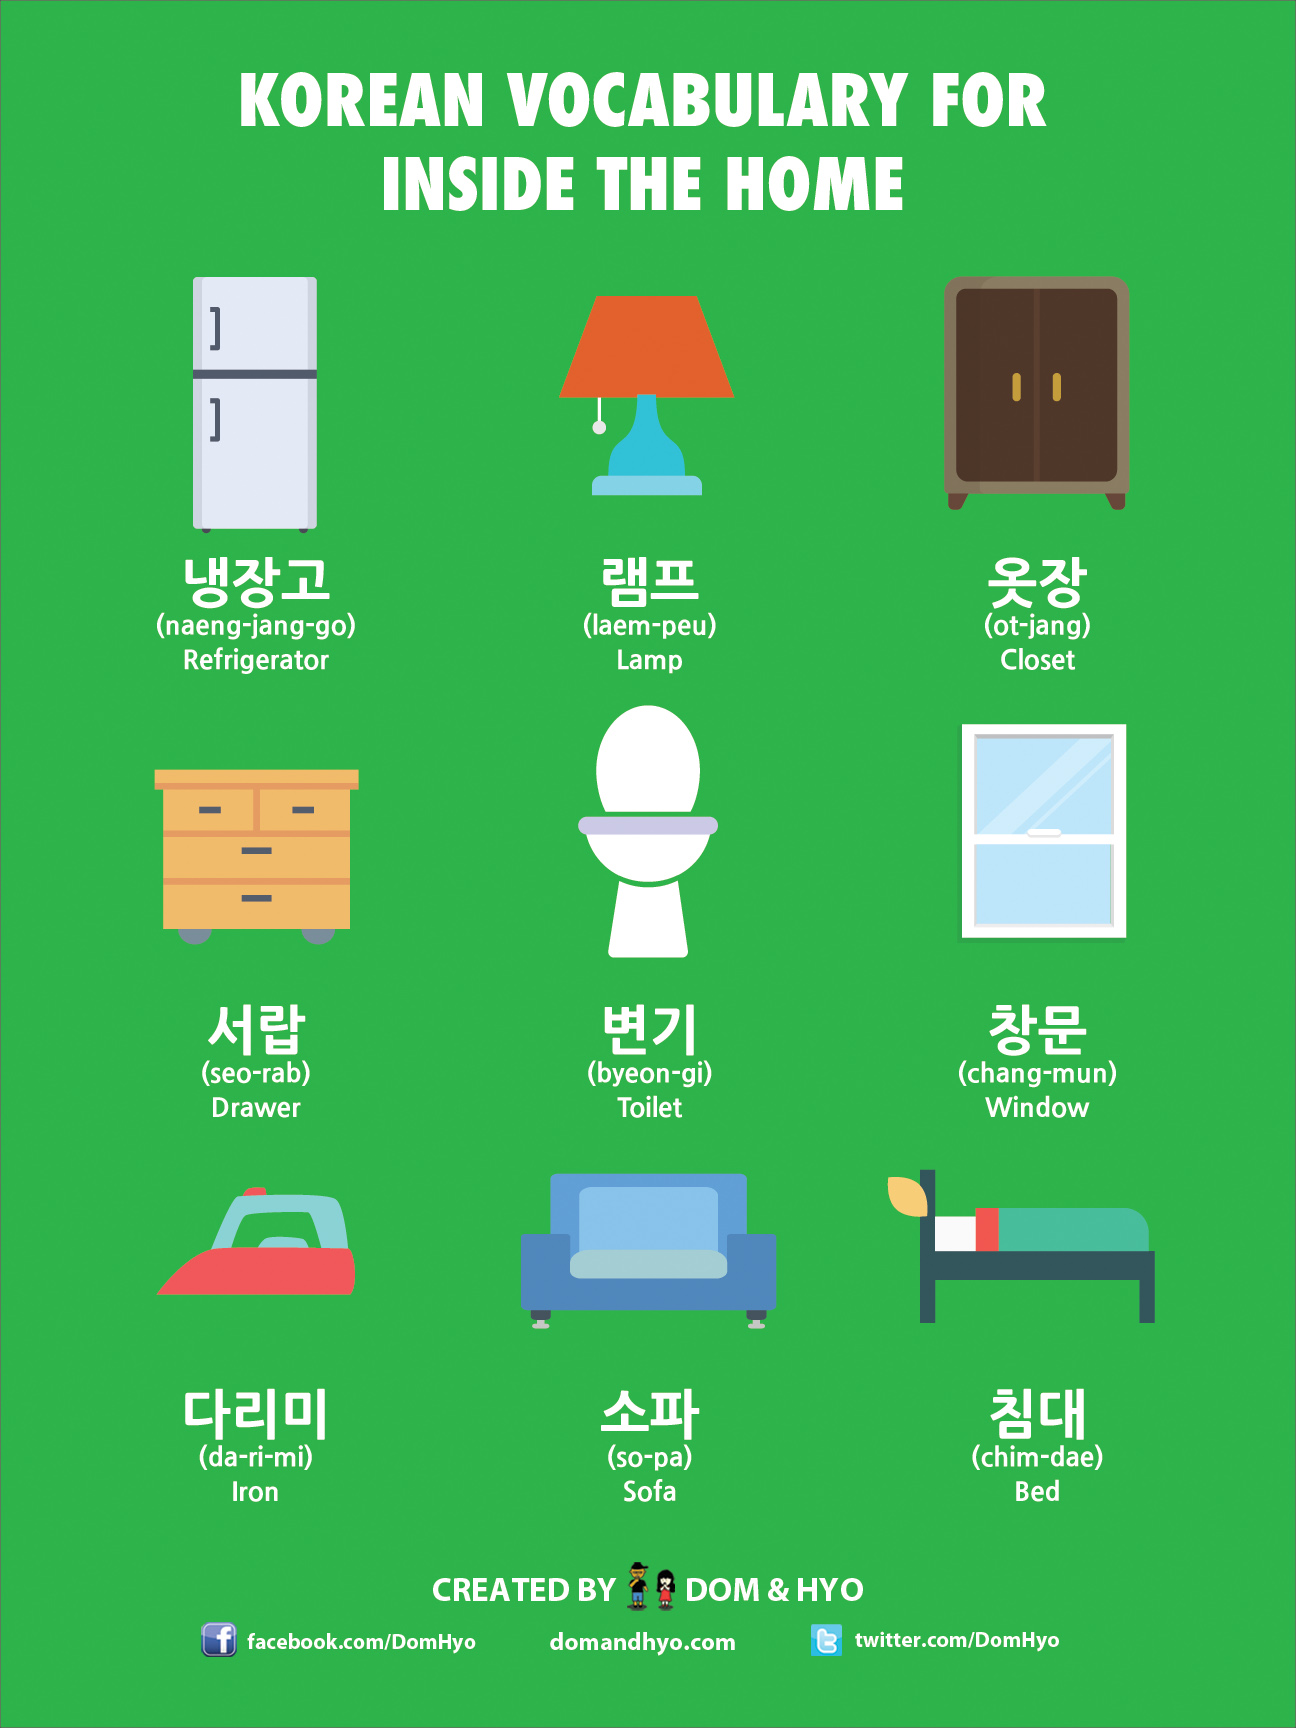 Home/House Vocabulary in Korean